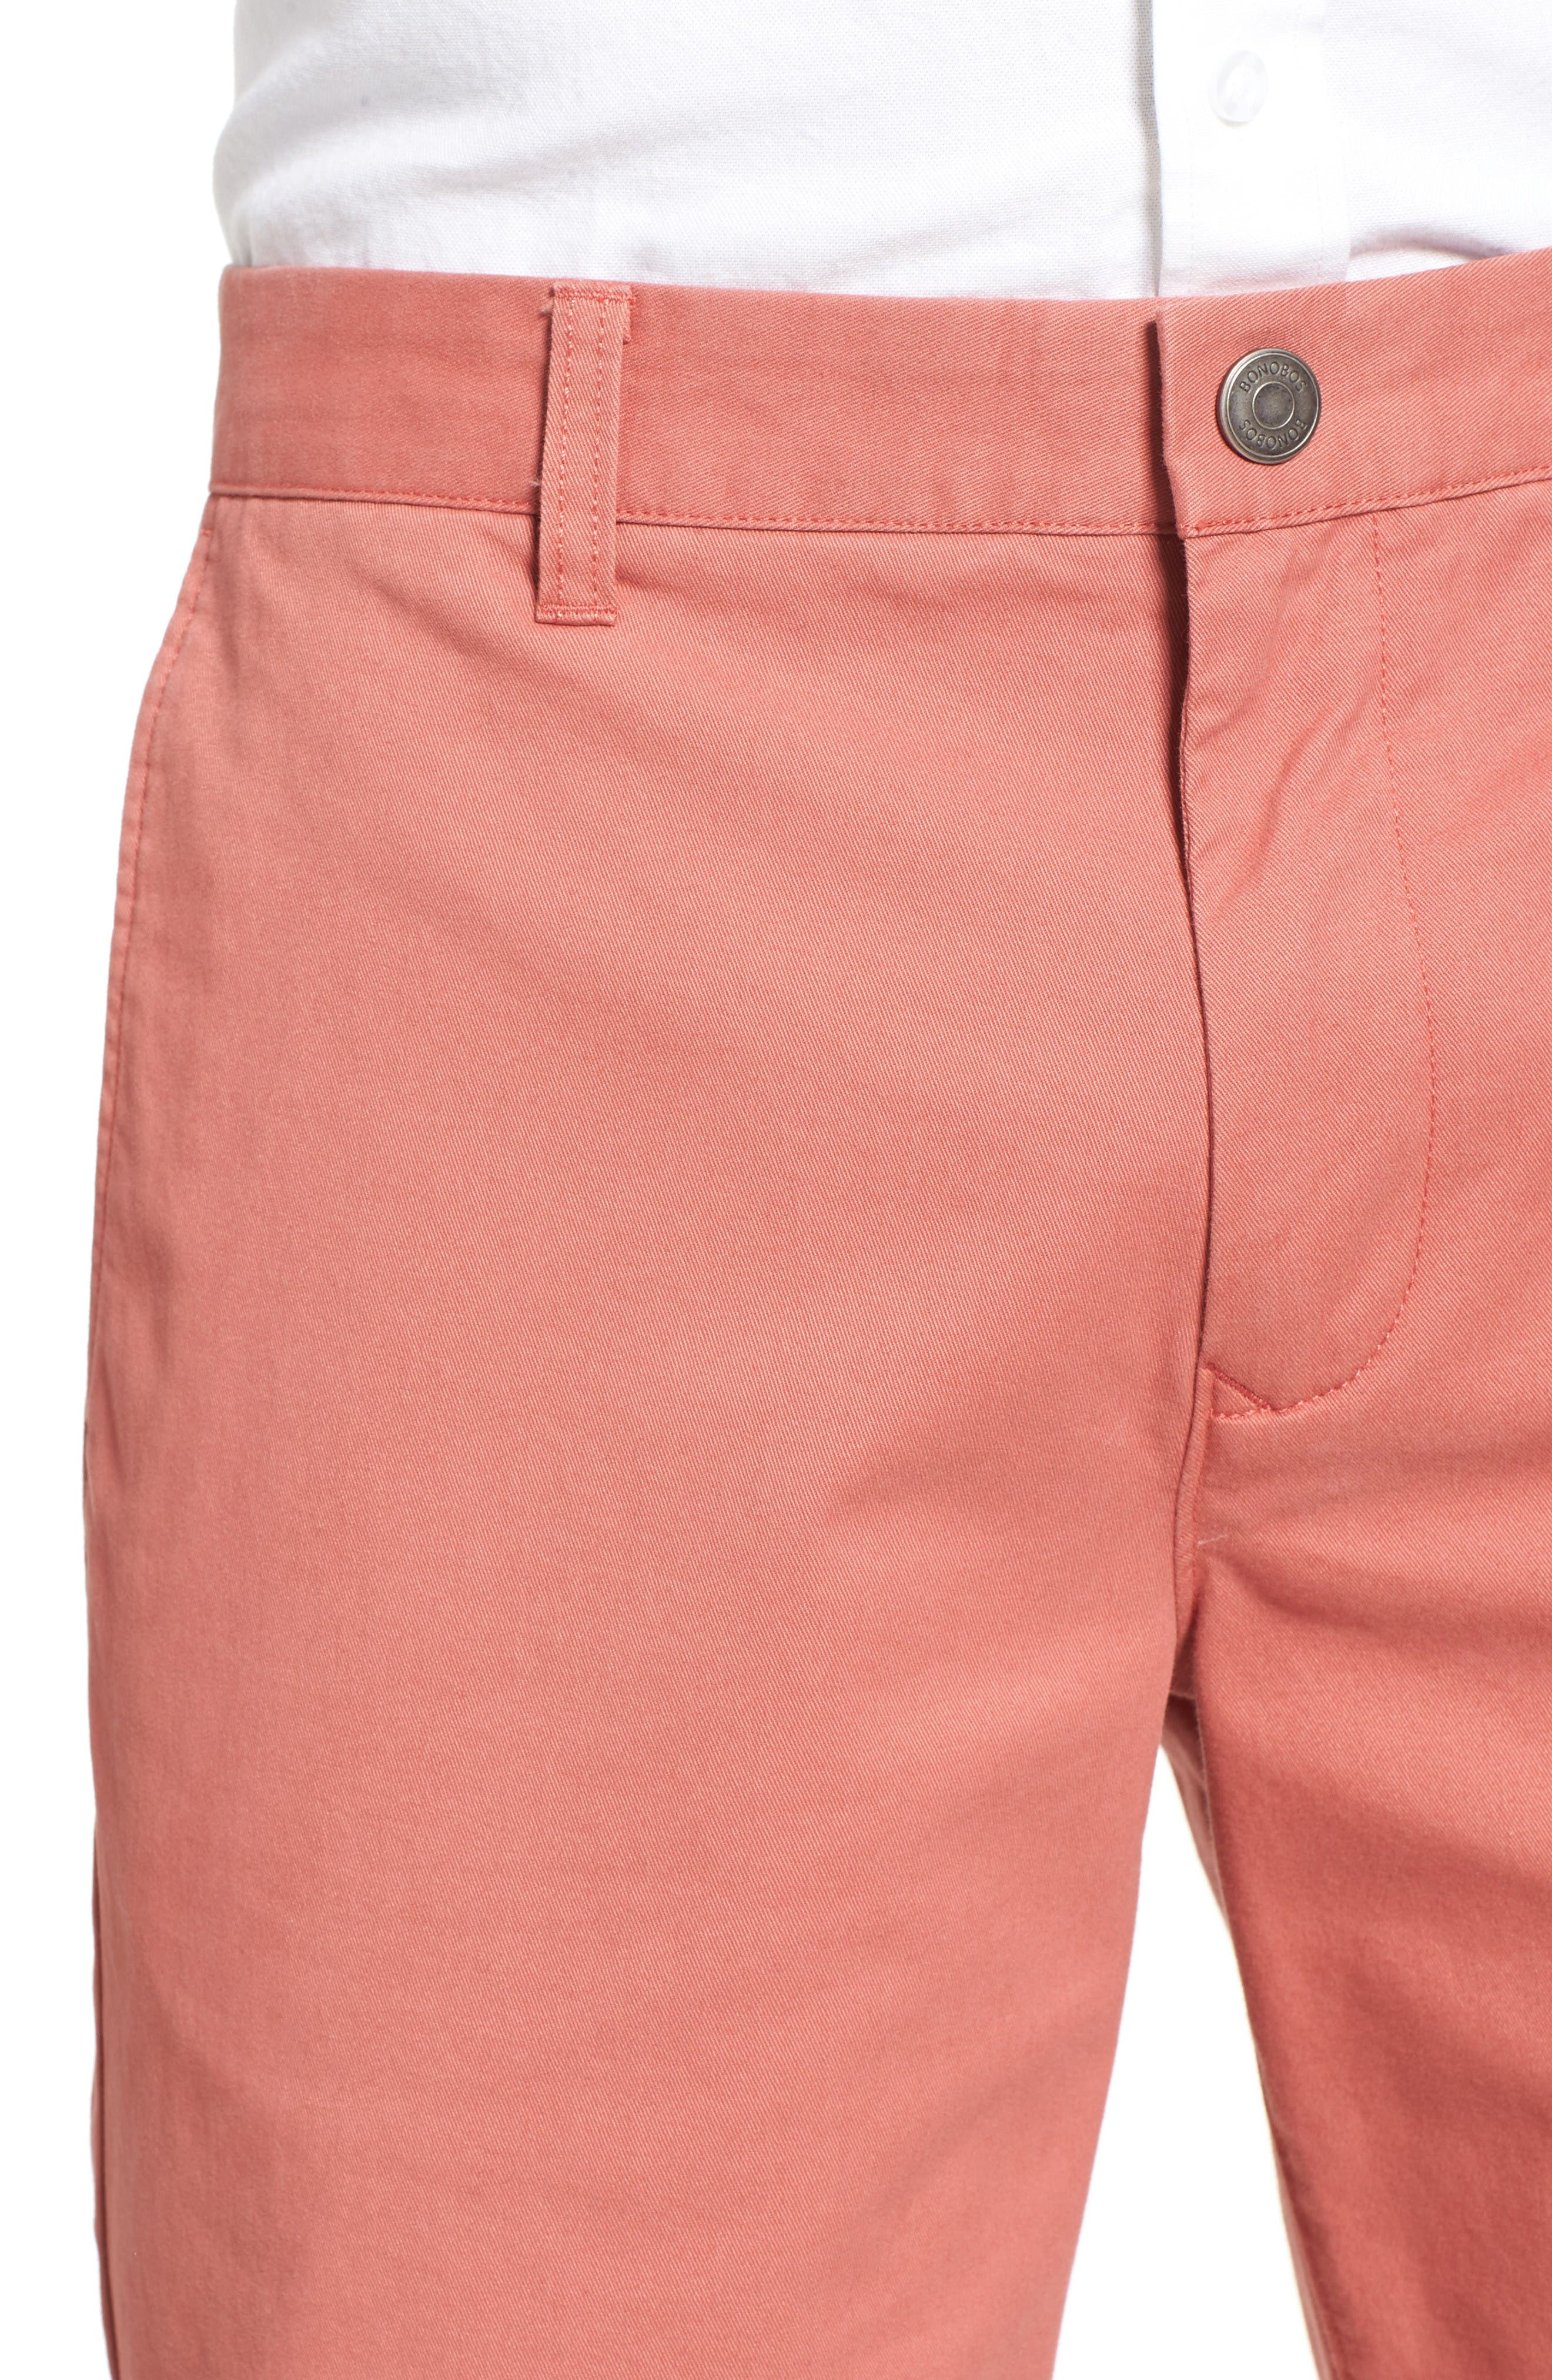 Stretch Washed Chino 7-Inch Shorts,                             Alternate thumbnail 4, color,                             Rich Coral